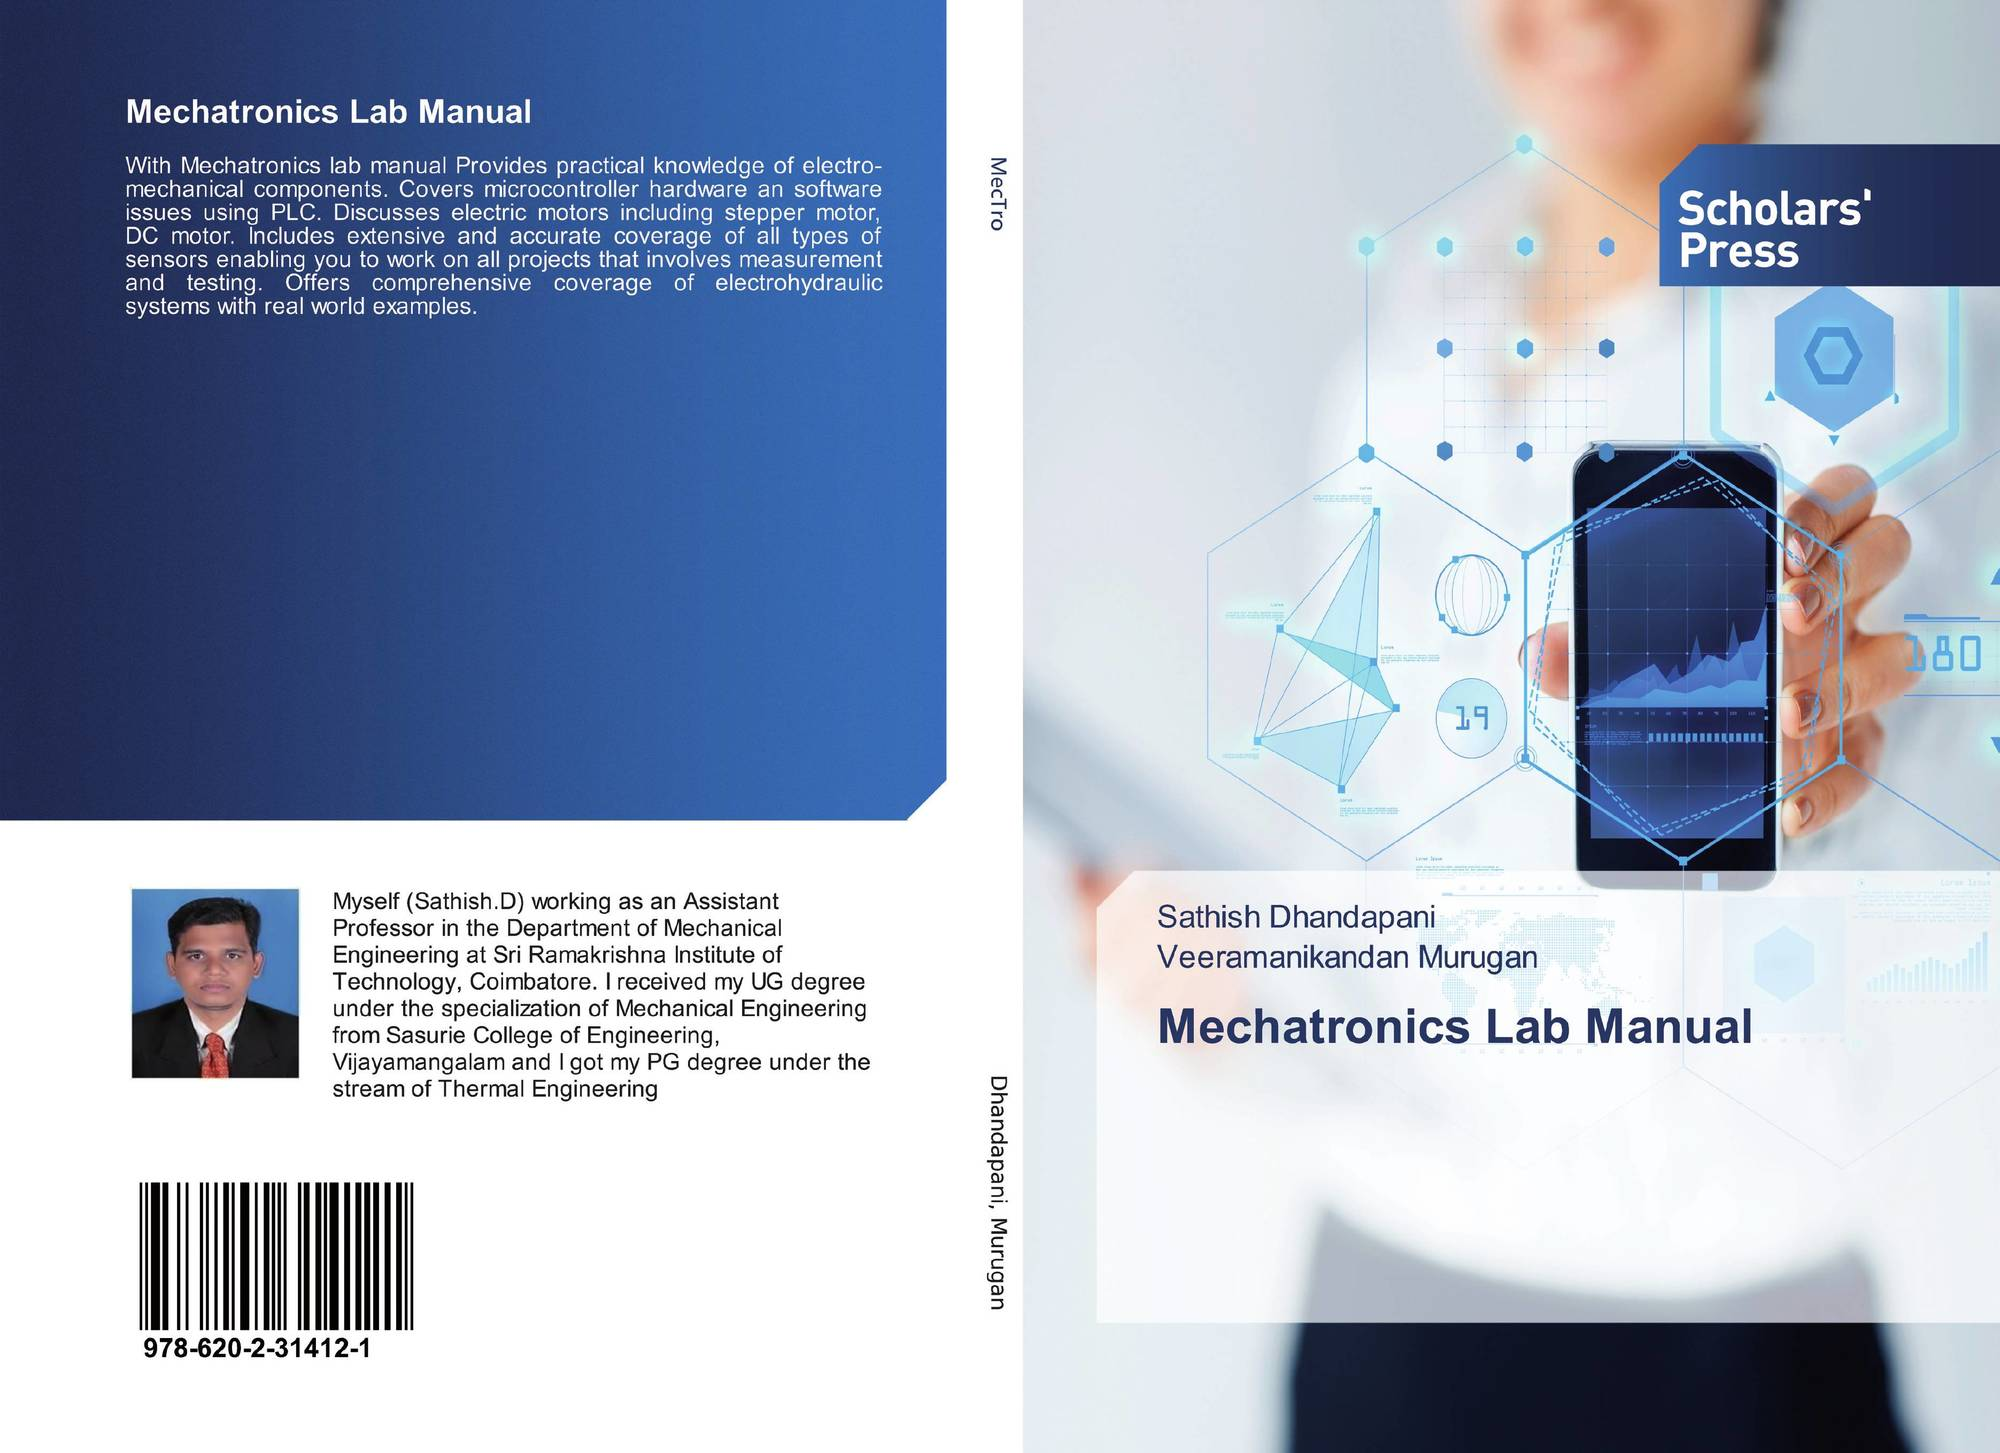 ... Mechanical engineering, manufacturing technology · Mechatronics Lab  Manual. Bookcover of Mechatronics Lab Manual. 9786202314121